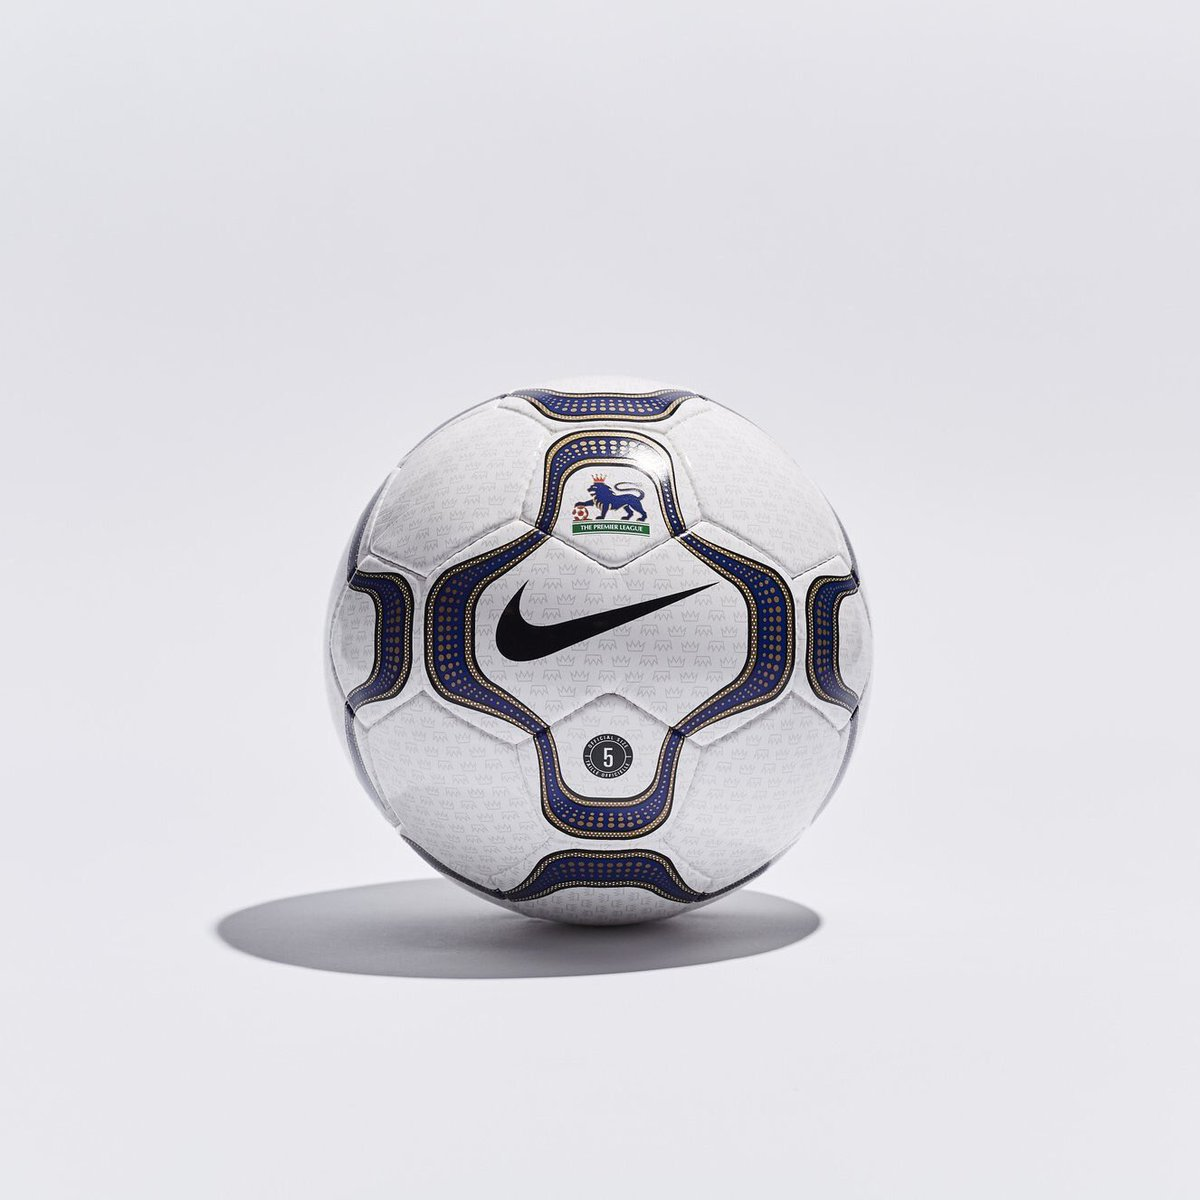 To celebrate their 20 year partnership with the Premier League, Nike have released a special remake of the 2000 ball 😍